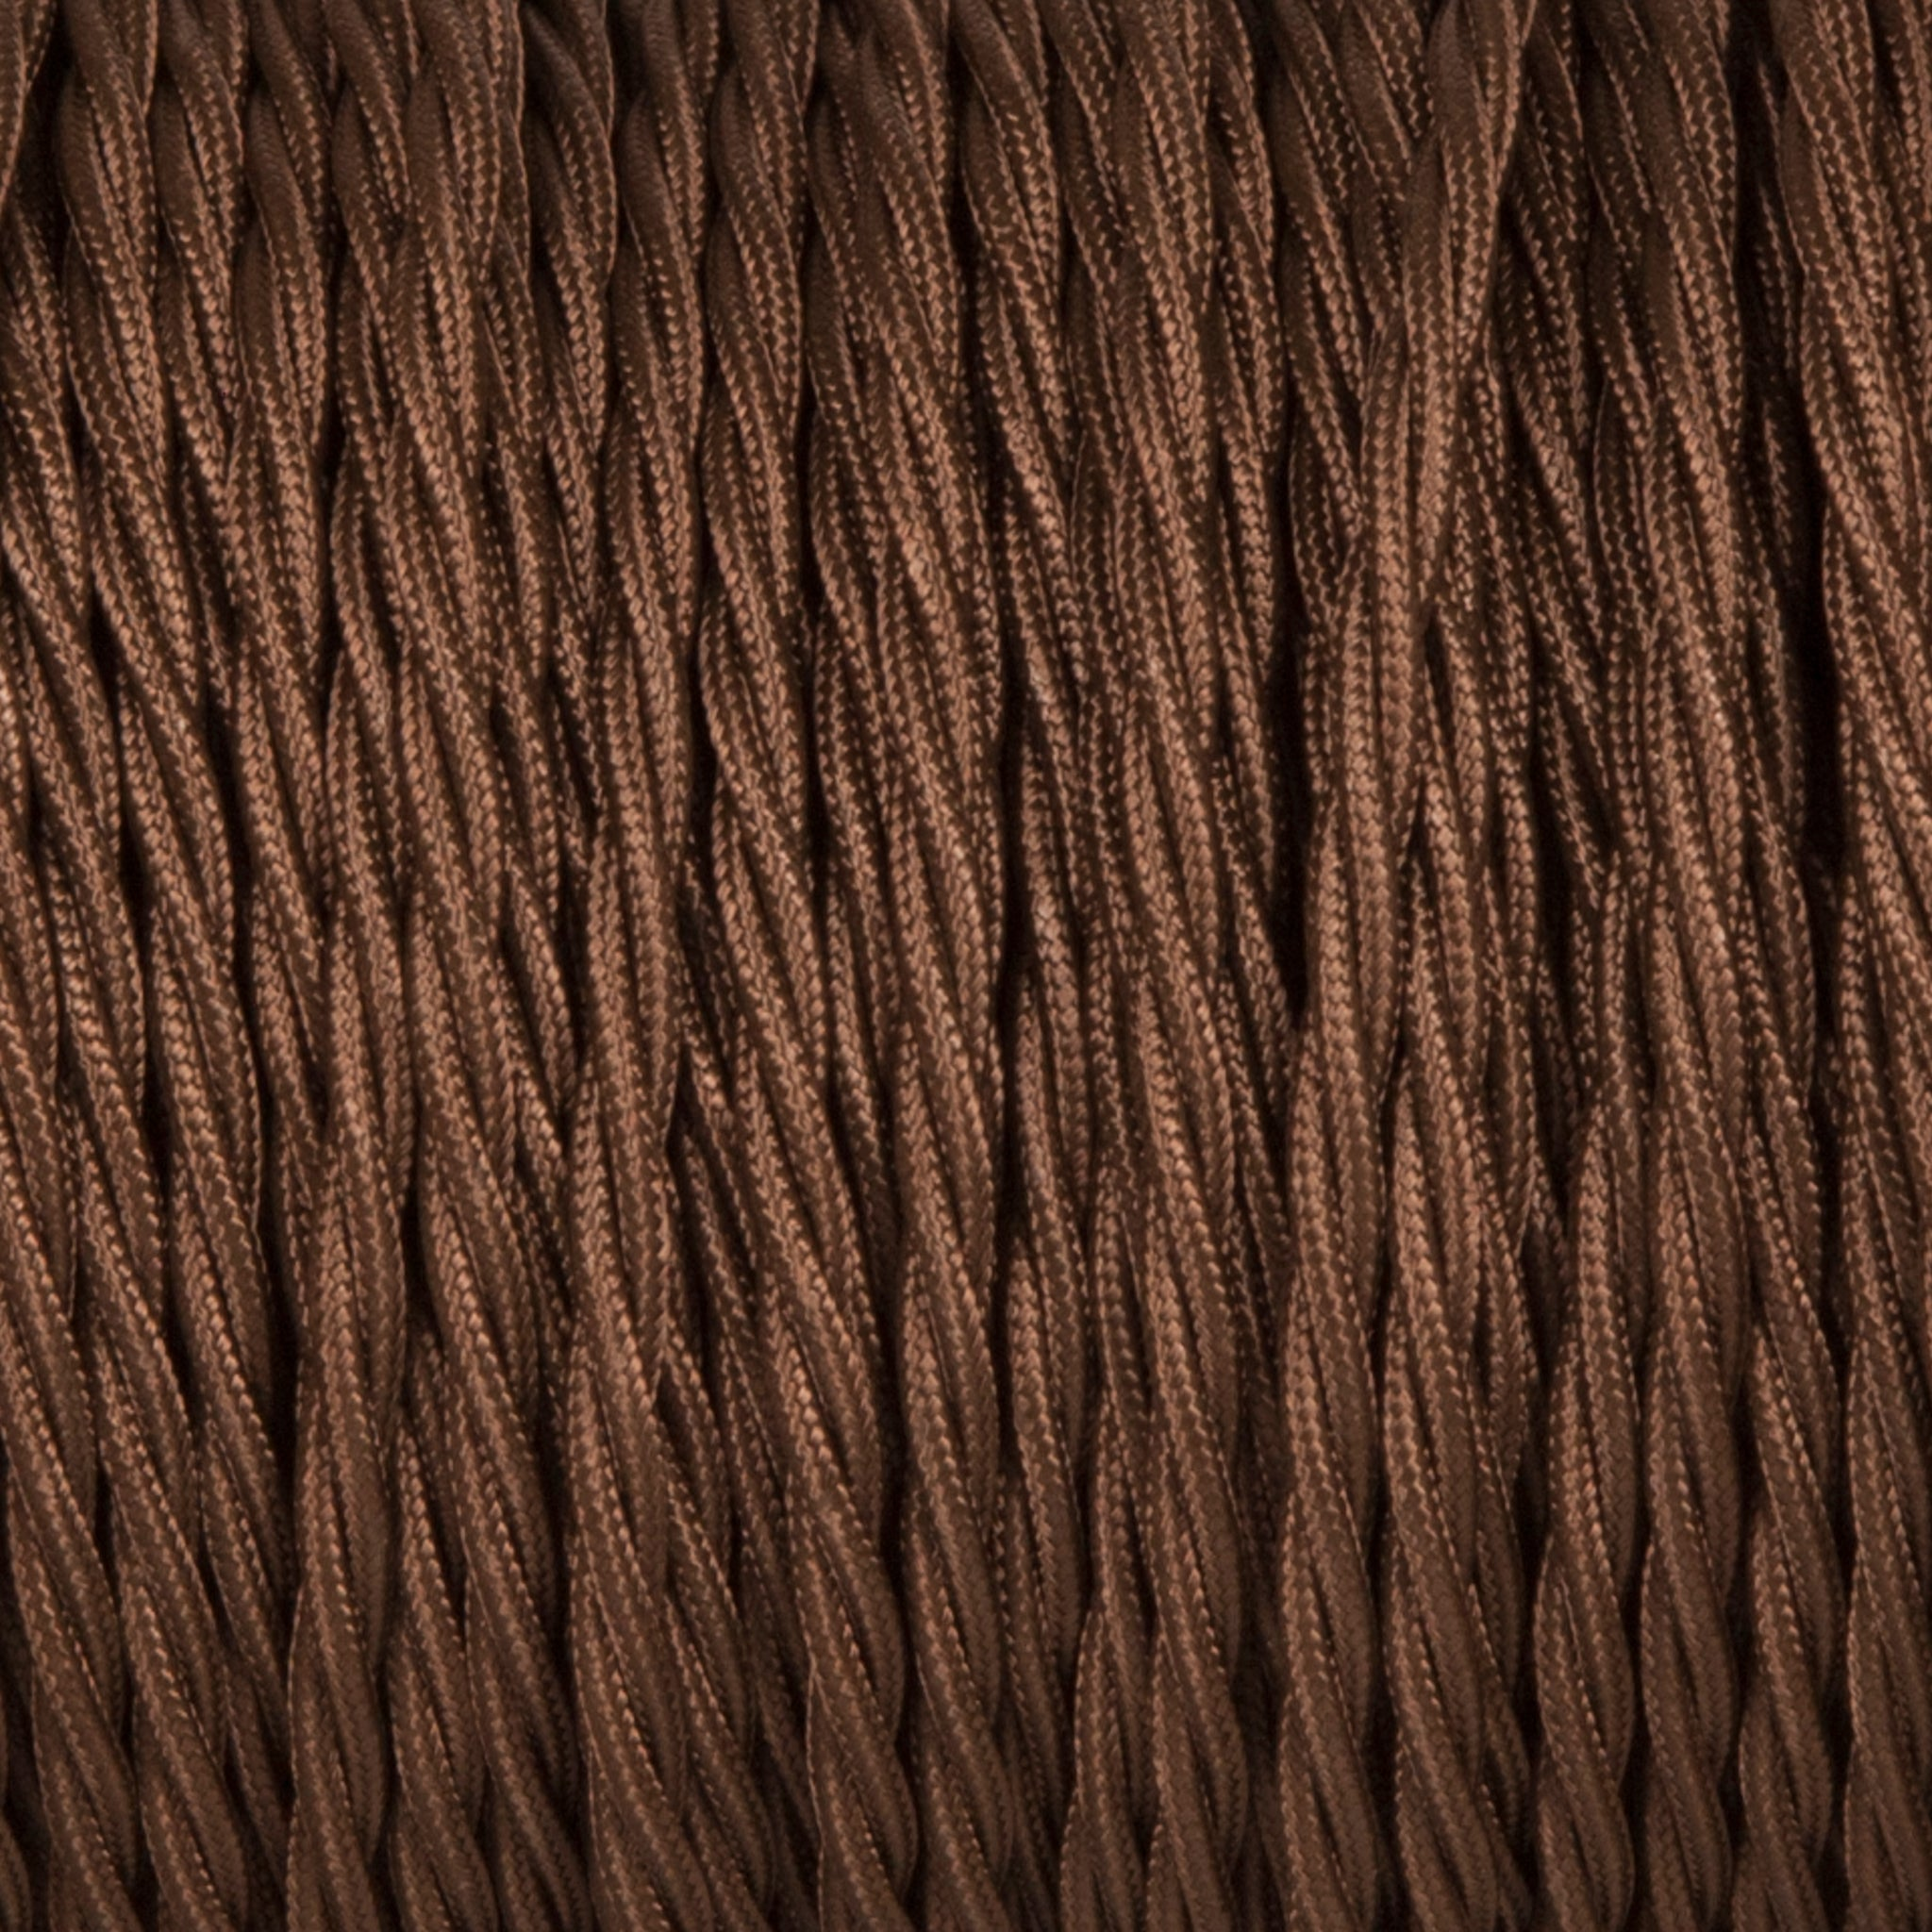 Twisted lighting cable - Brown braided fabric